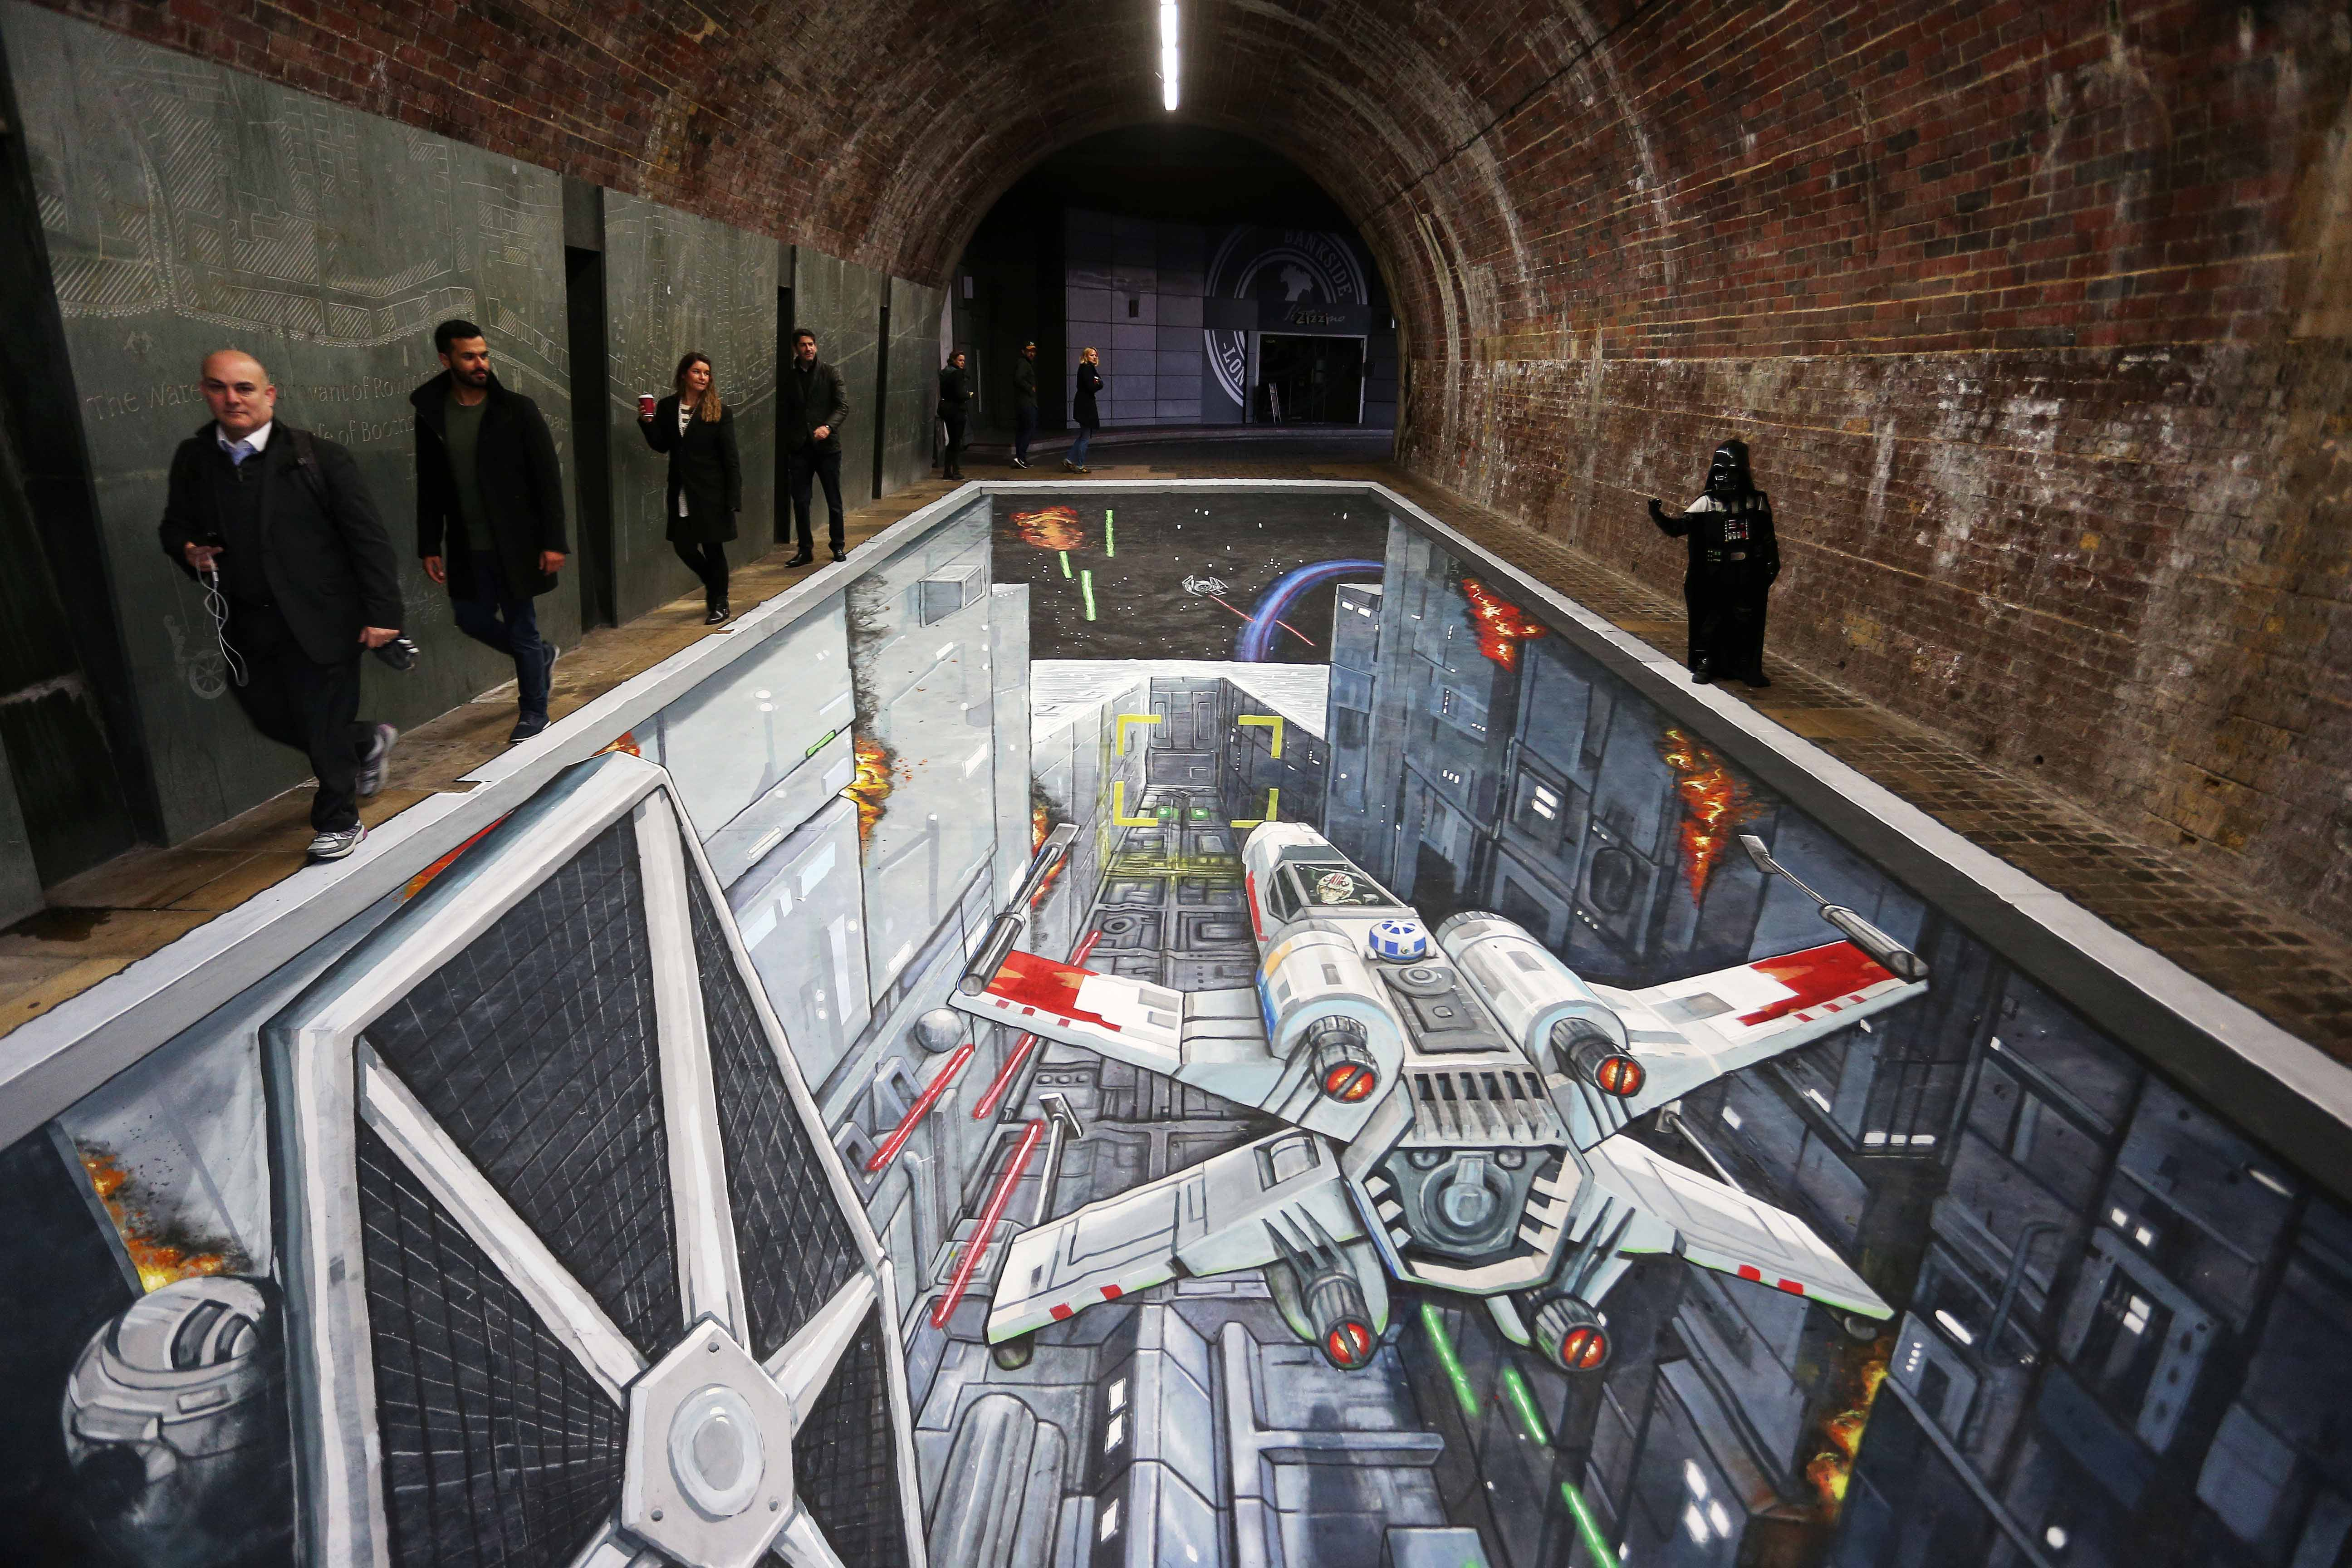 COMMUTERS TRANSPORTED INTO EPIC DEATH STAR TRENCH RUN